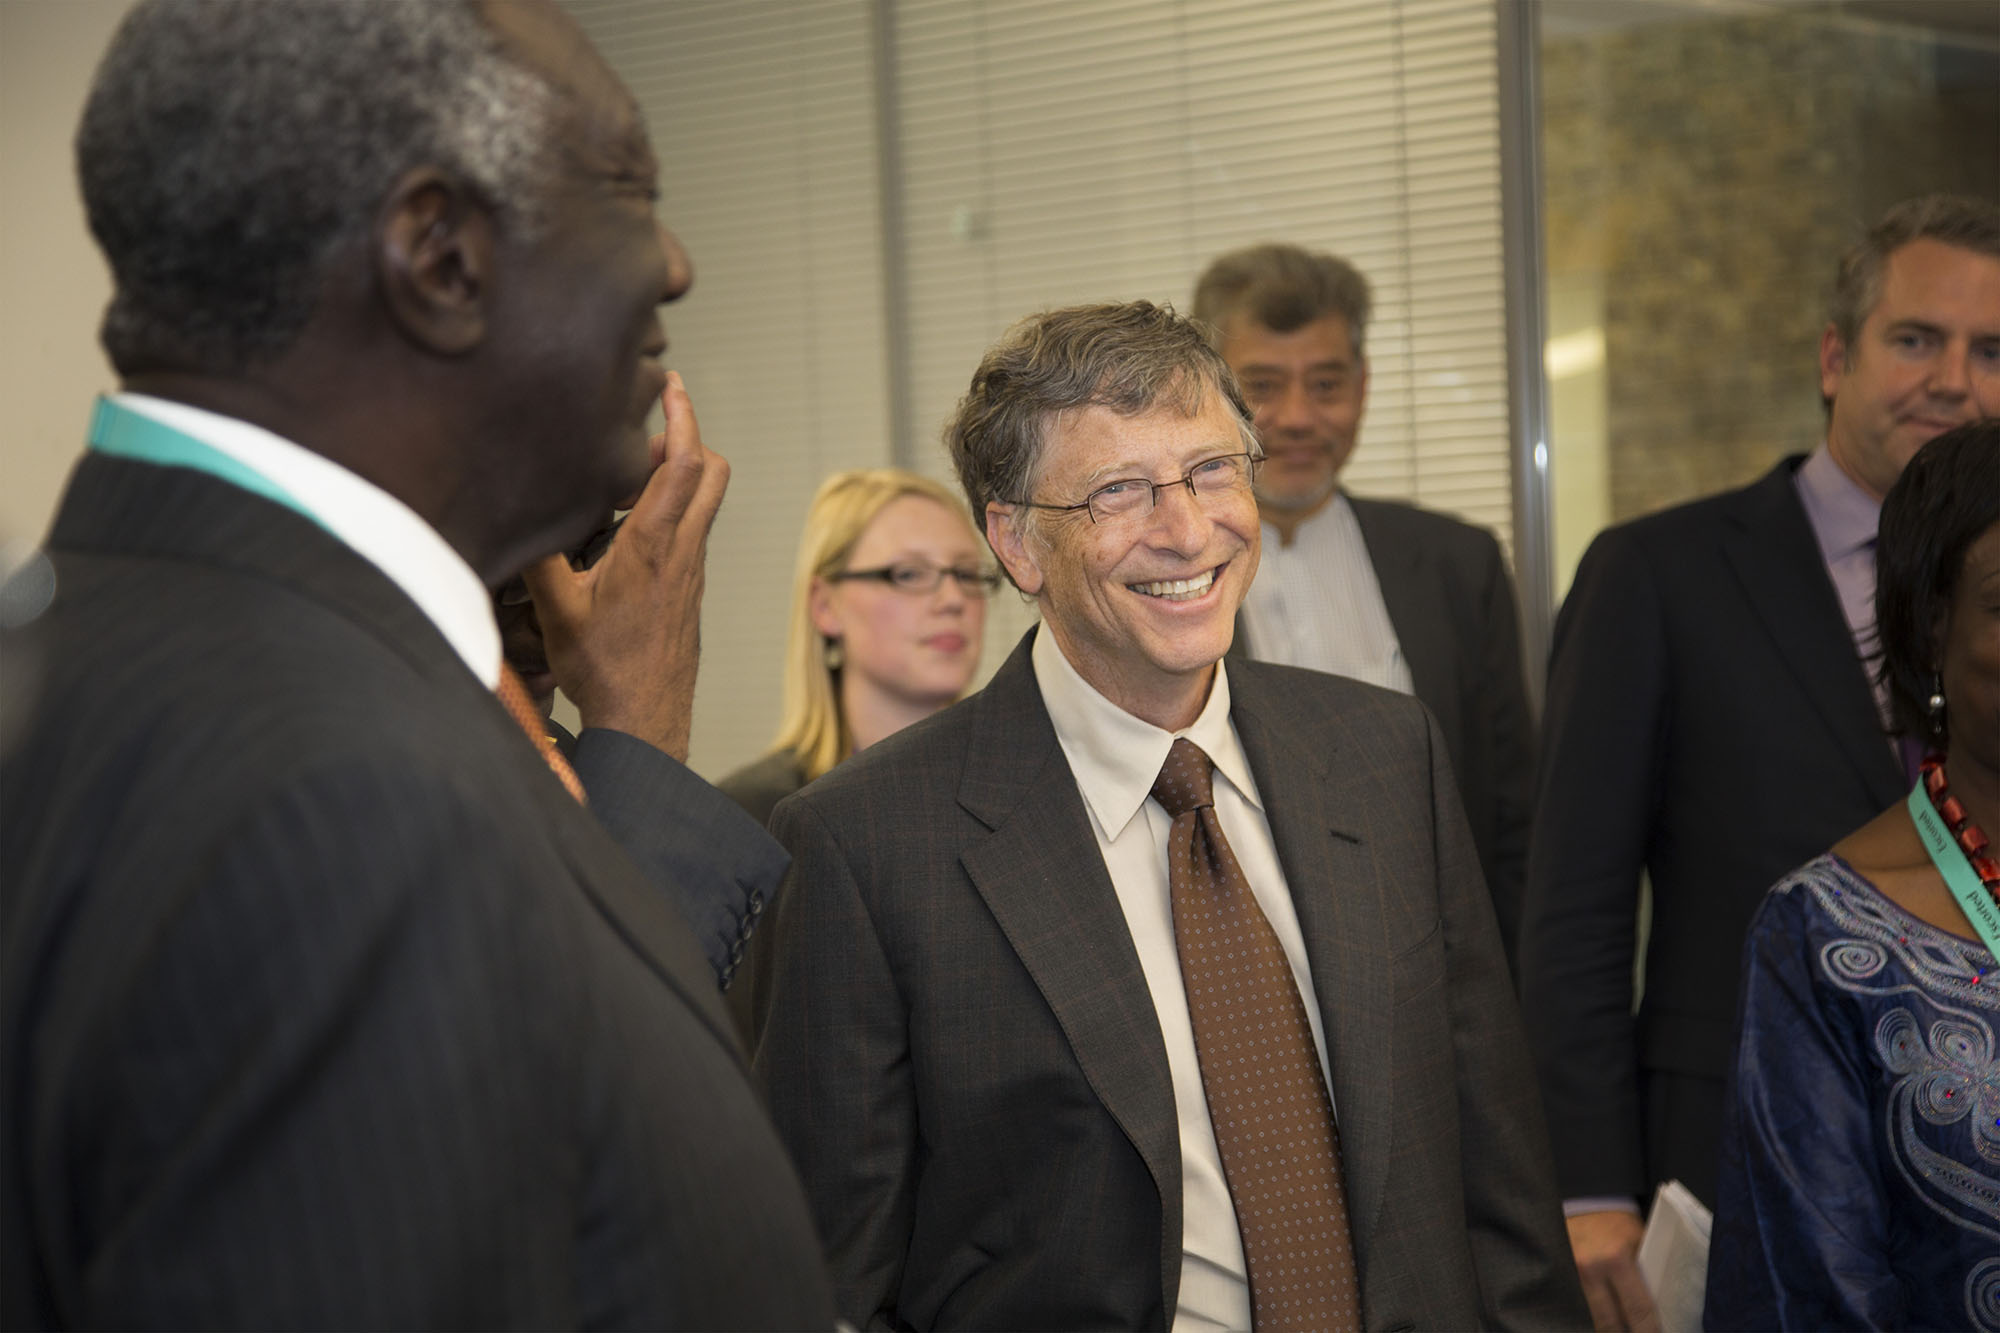 Bill Gates visiting DfID in London during a summit on World nutrition.  For the Bill & Melinda Gates Foundation.